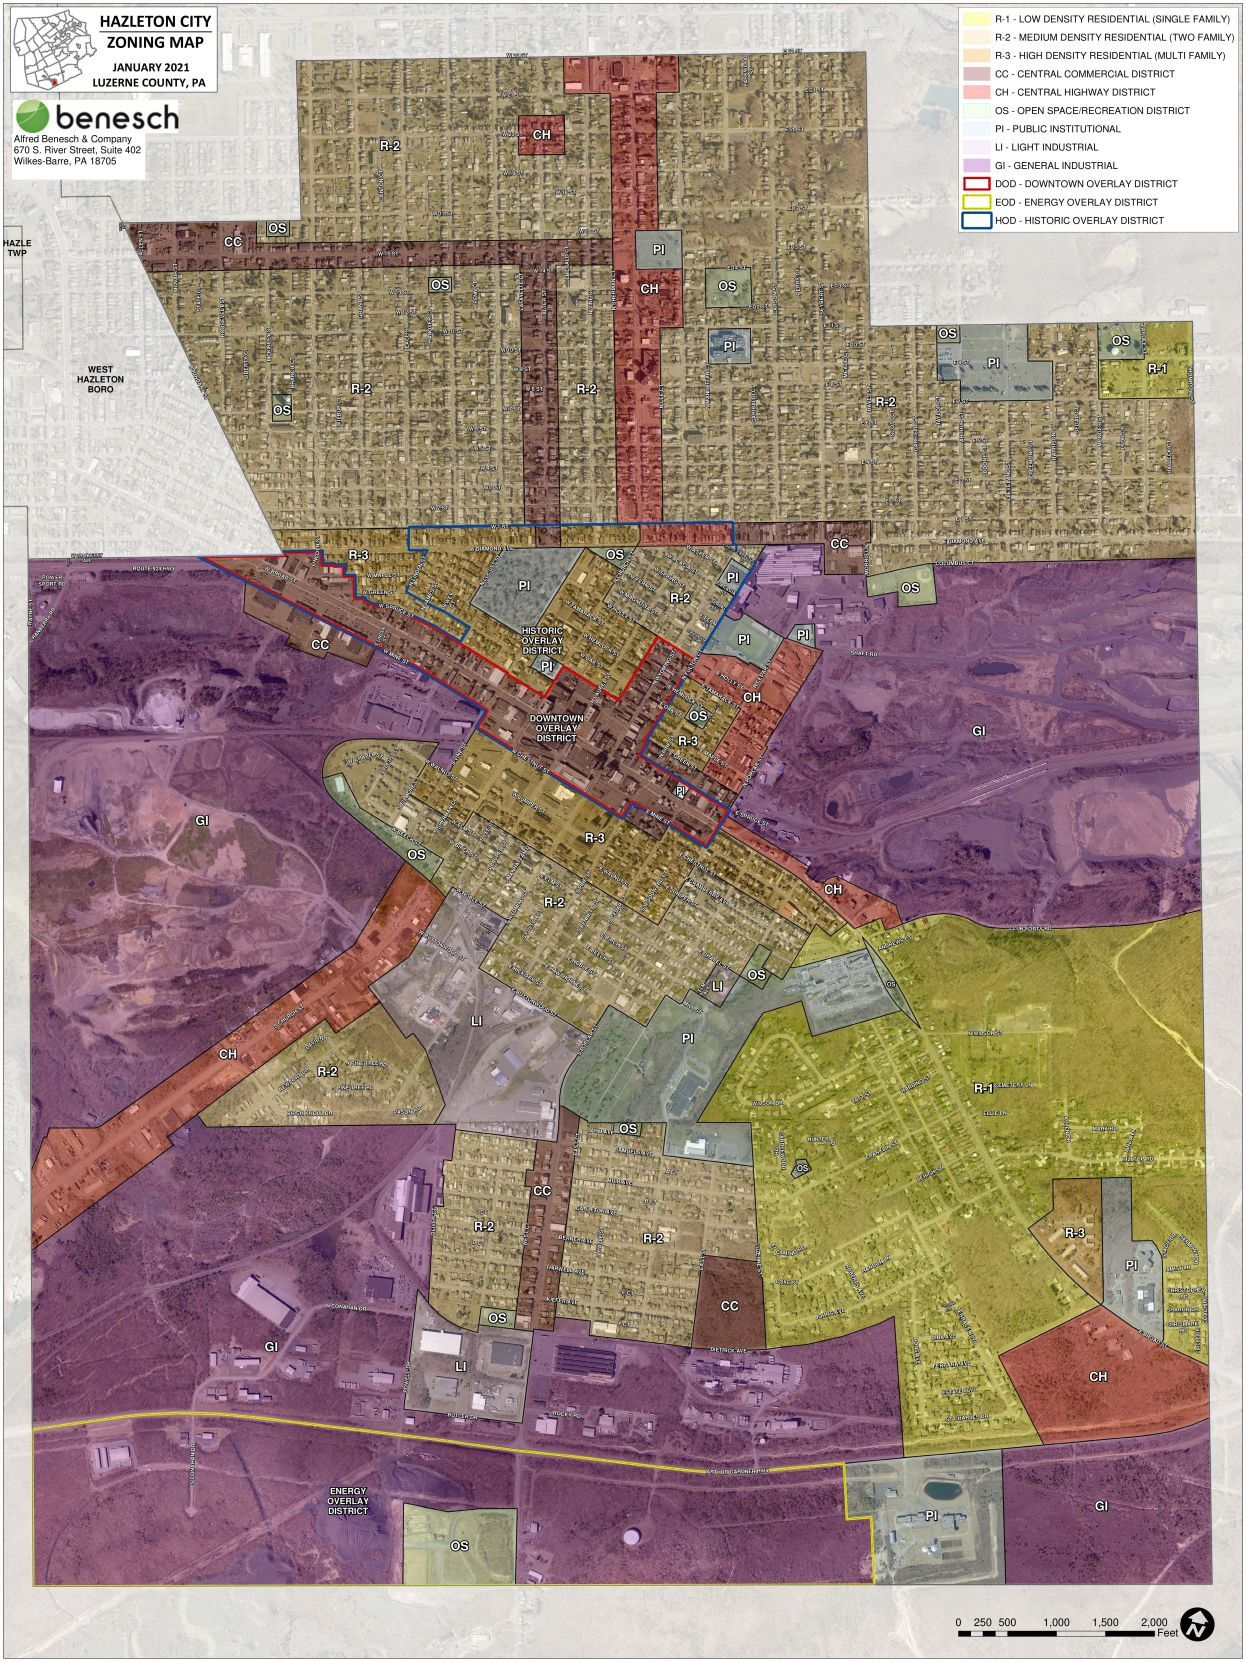 Proposed city zoning map